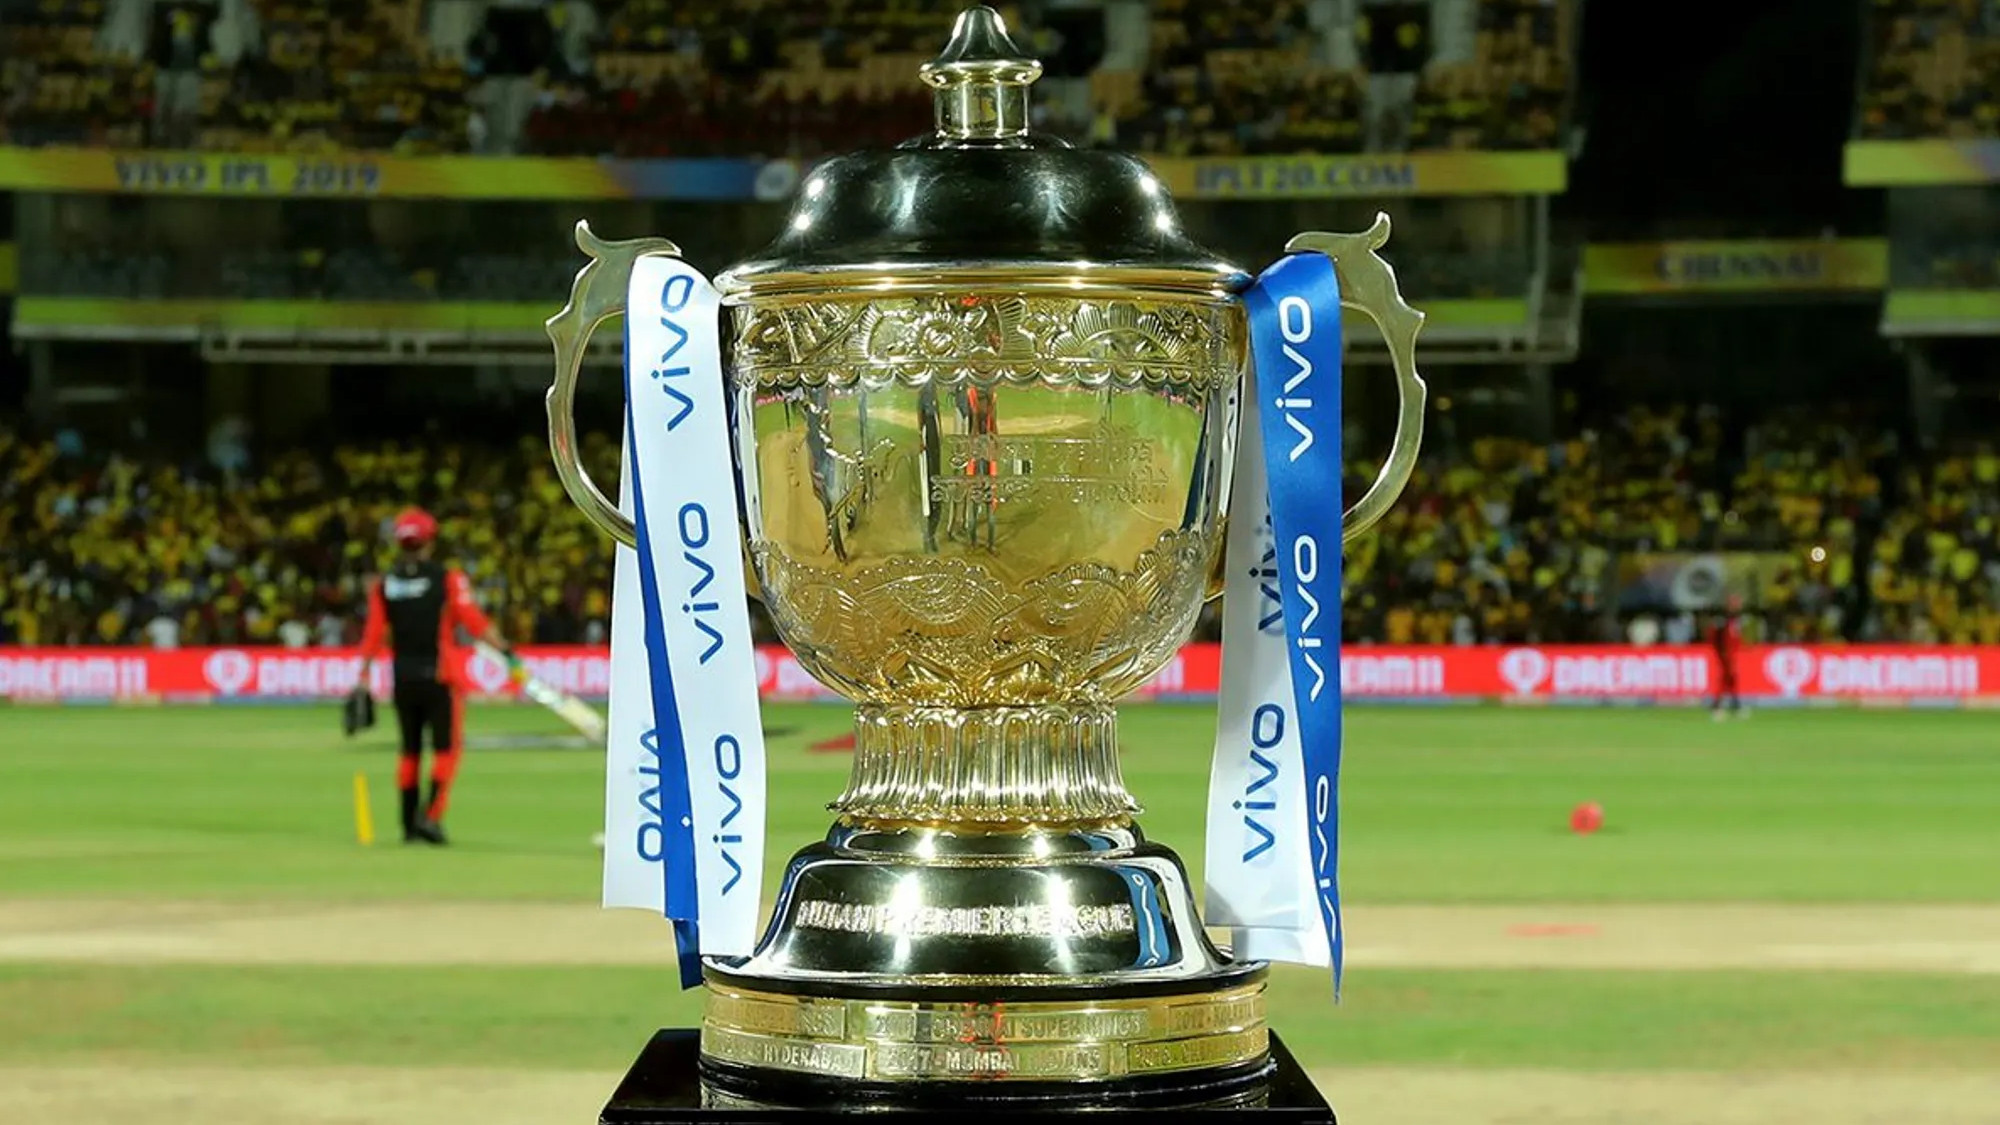 IPL 2021: List of all the player changes done by franchises ahead of second leg of the IPL 14